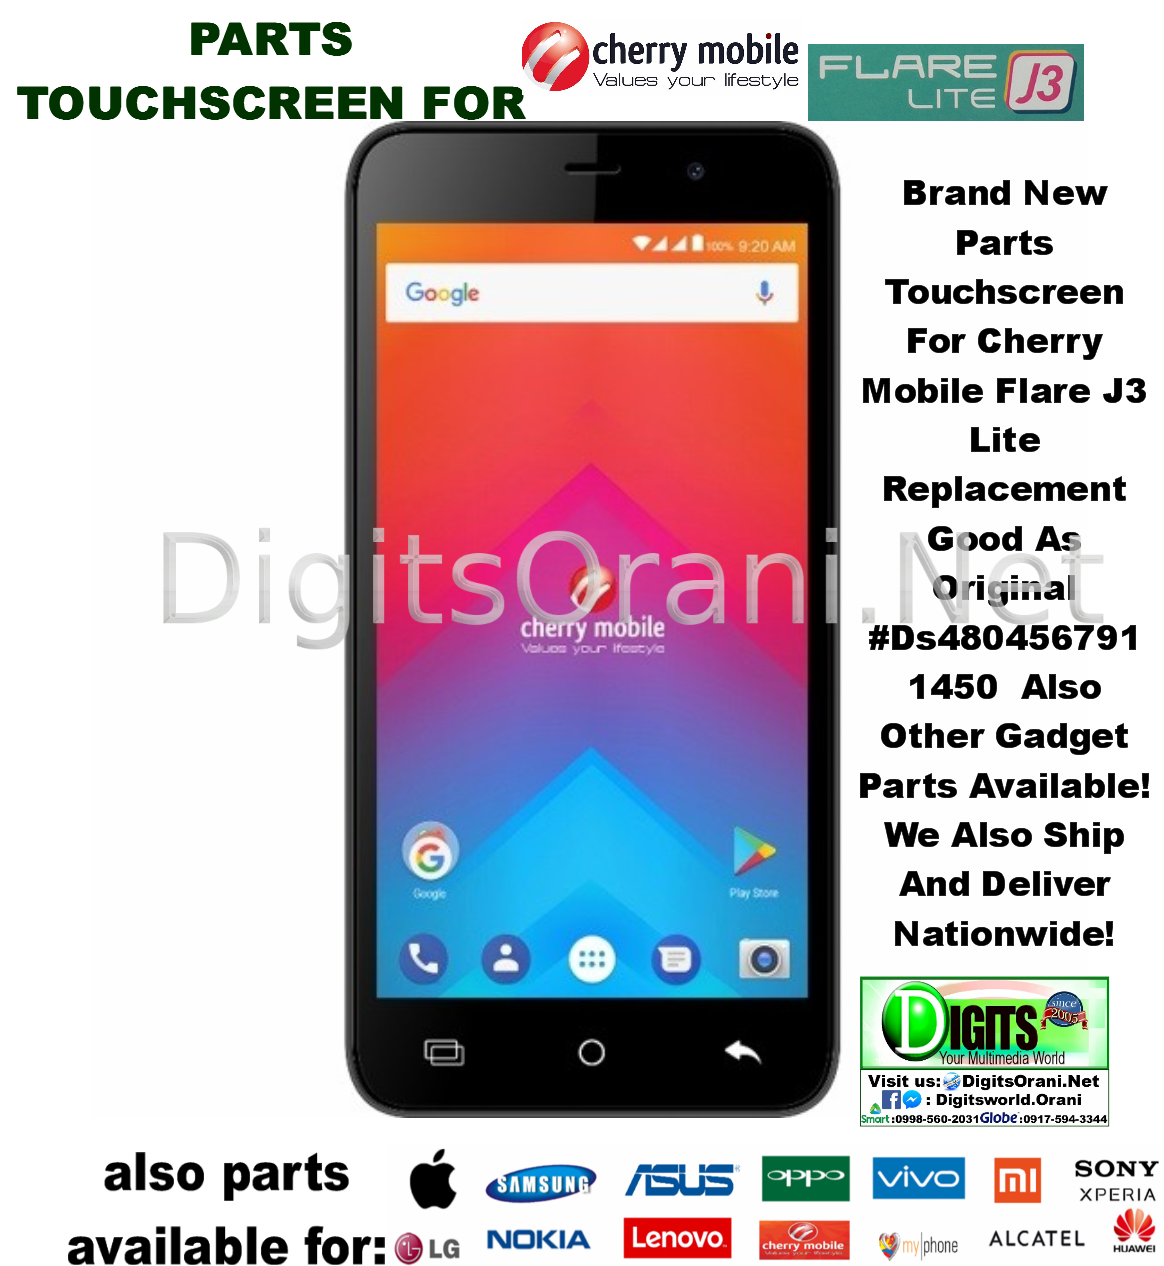 Parts Touchscreen For Cherry Mobile Flare J3 Lite Replacement Good Lcd Asus Zenfone 6 Original Touch To Zoom